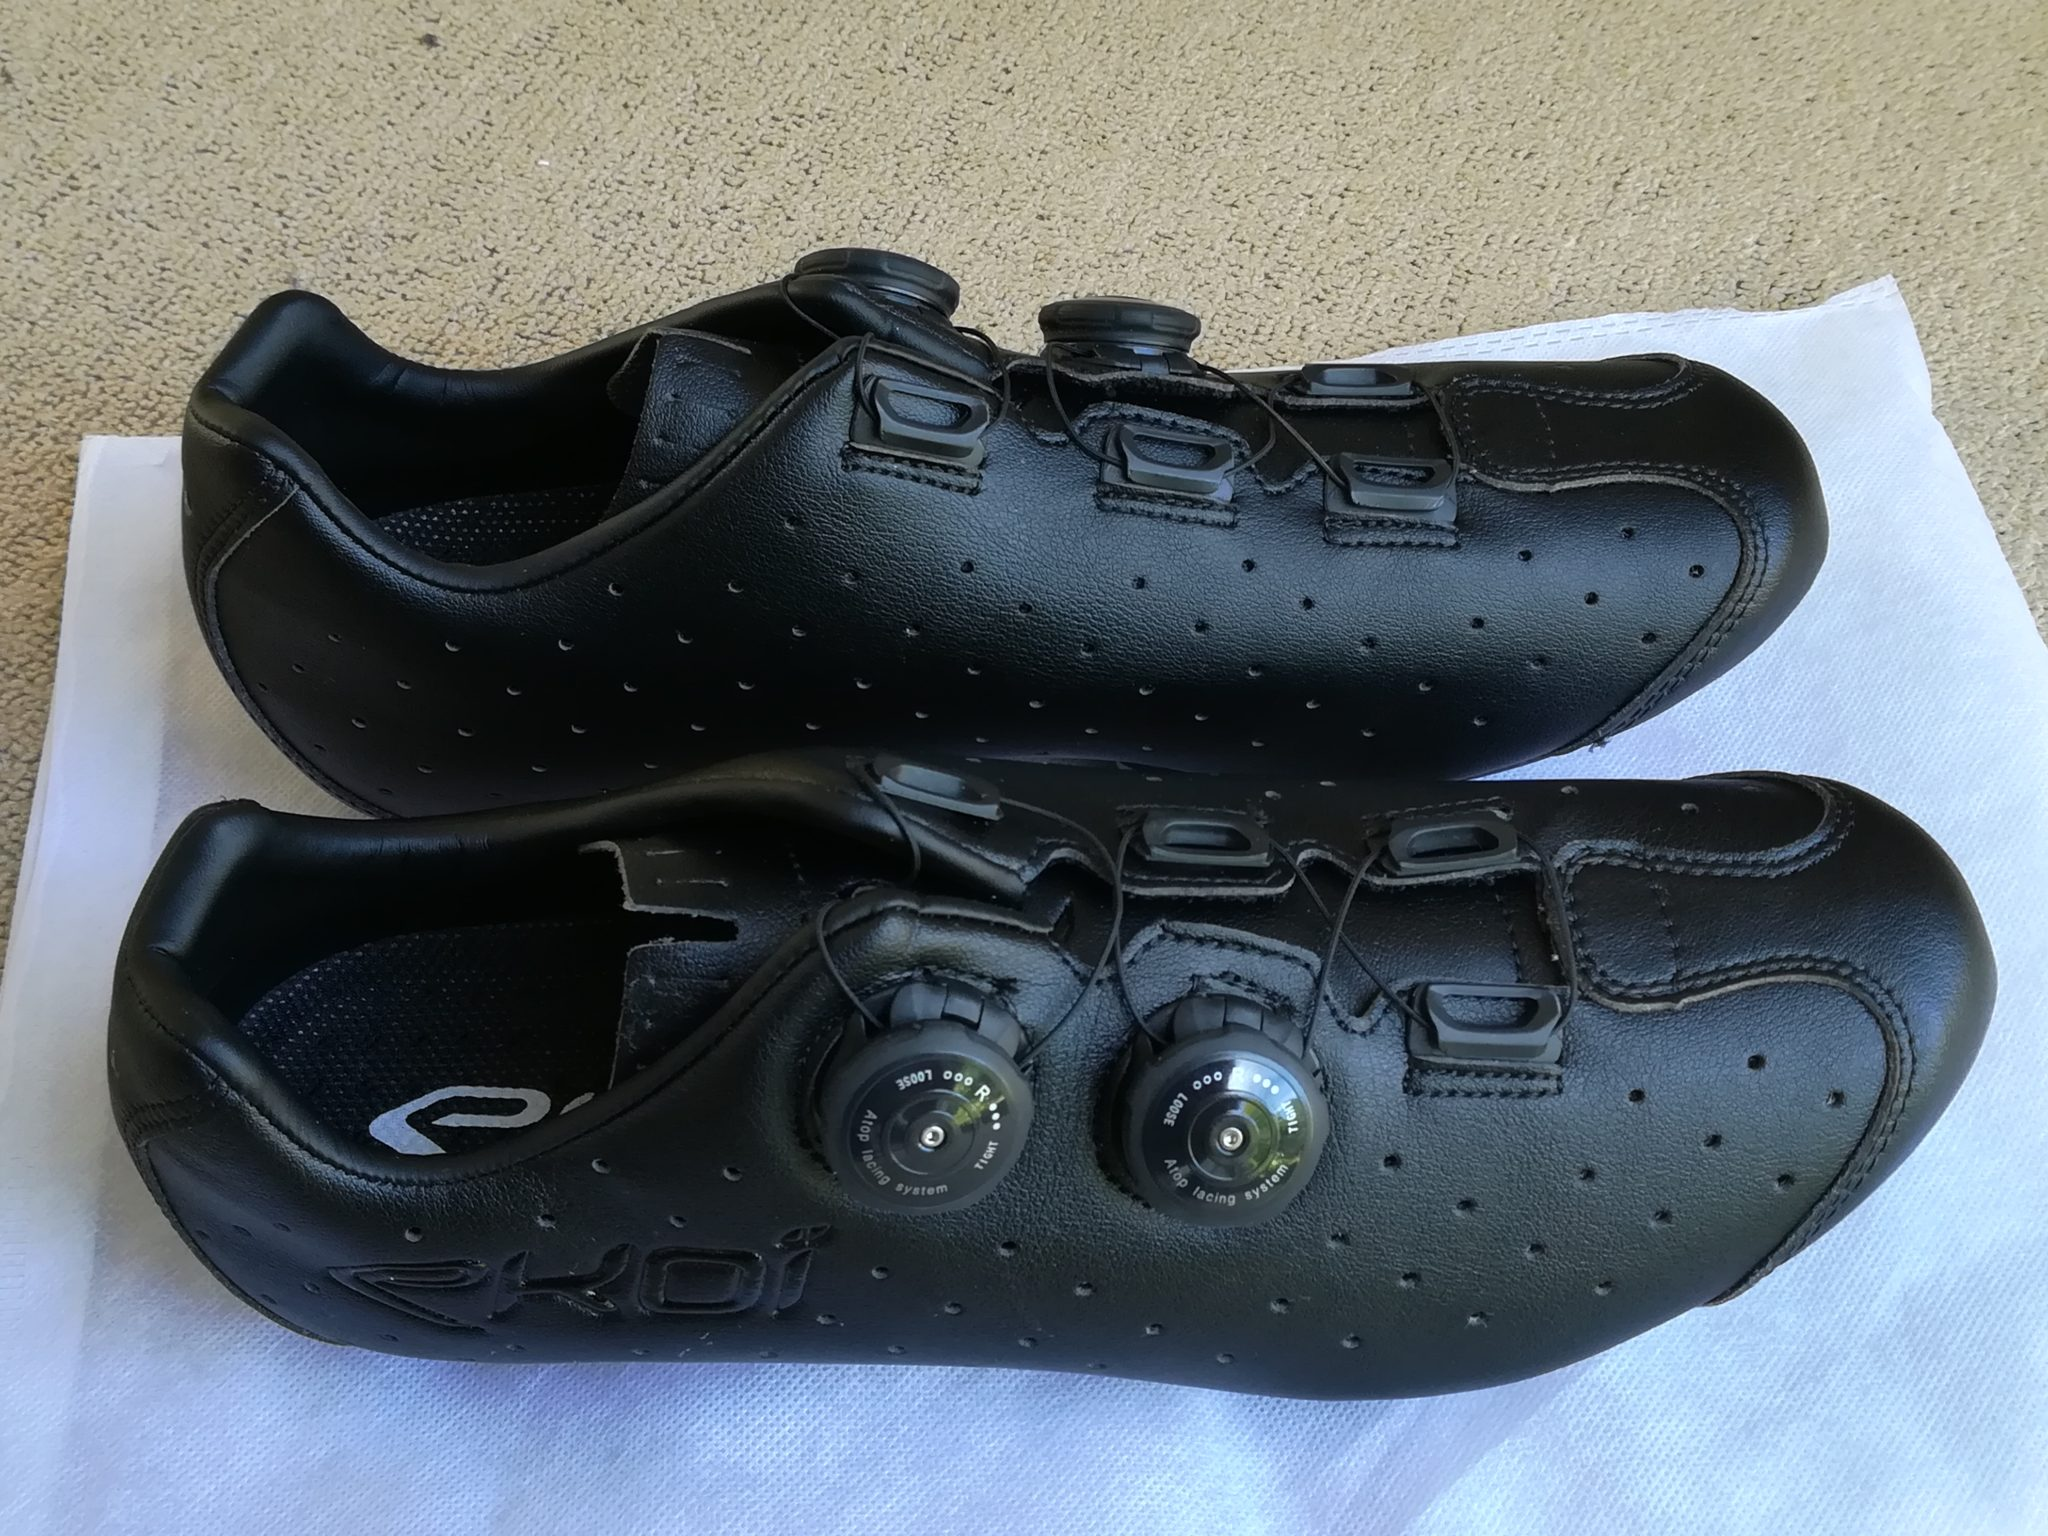 Ekoi R4 Road Shoes Review